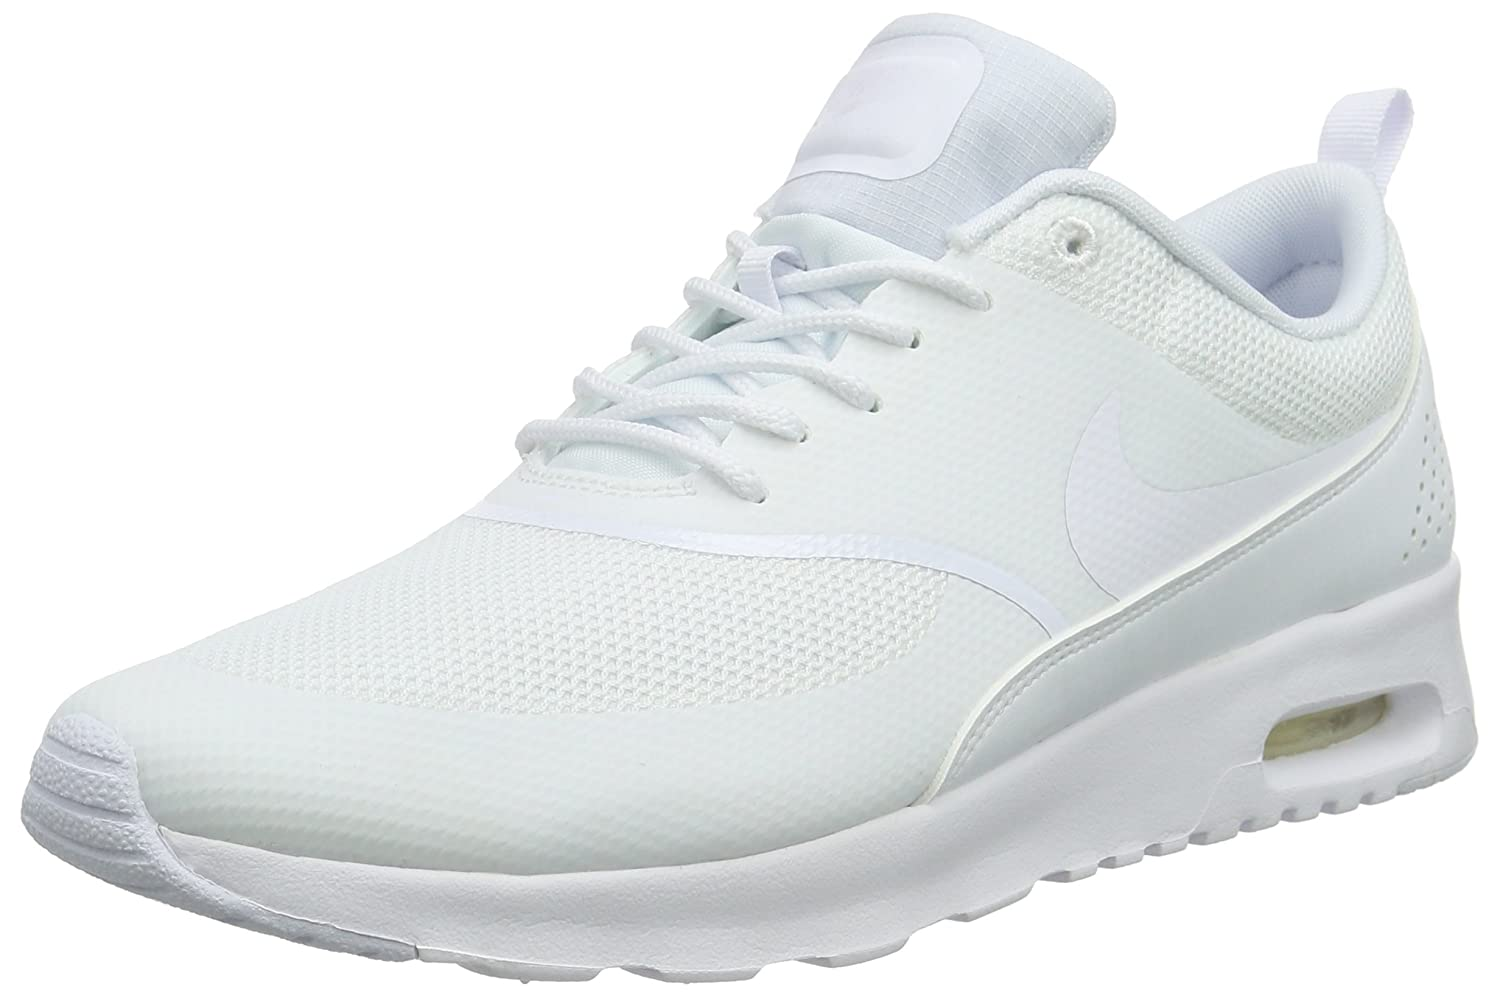 detailed look cd7ba 50463 Amazon.com   Nike Air Max Thea Womens Style  599409-101 Size  11 M US    Fitness   Cross-Training